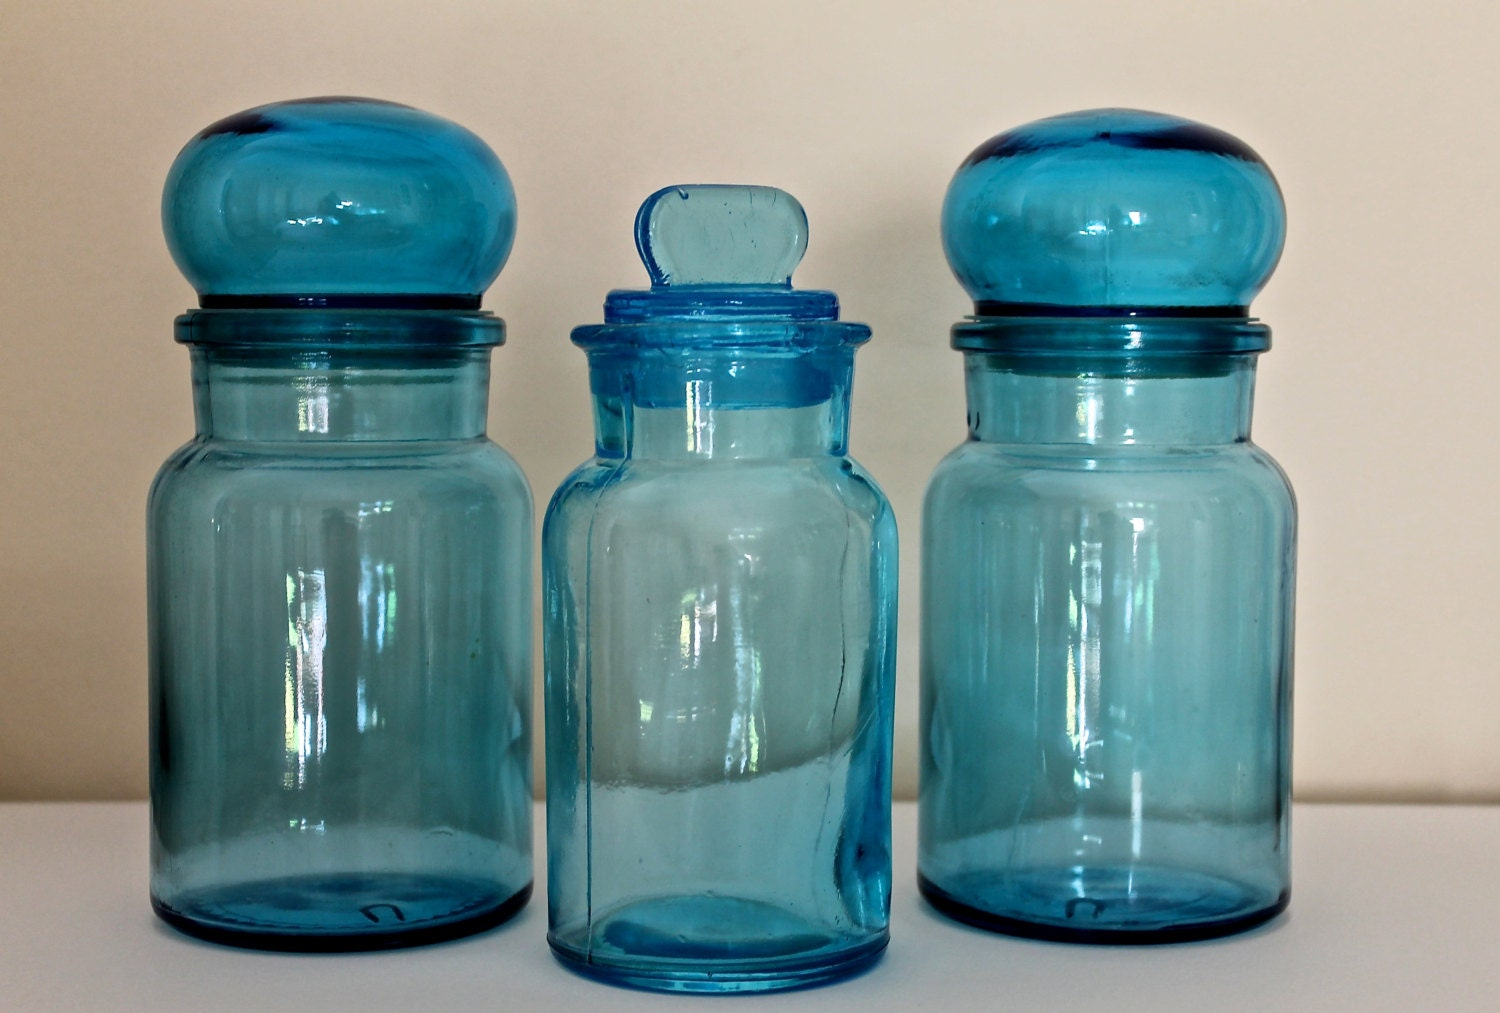 Vintage art deco belgium blue glass bottles jars set of 3 - Deco vintage belgique ...